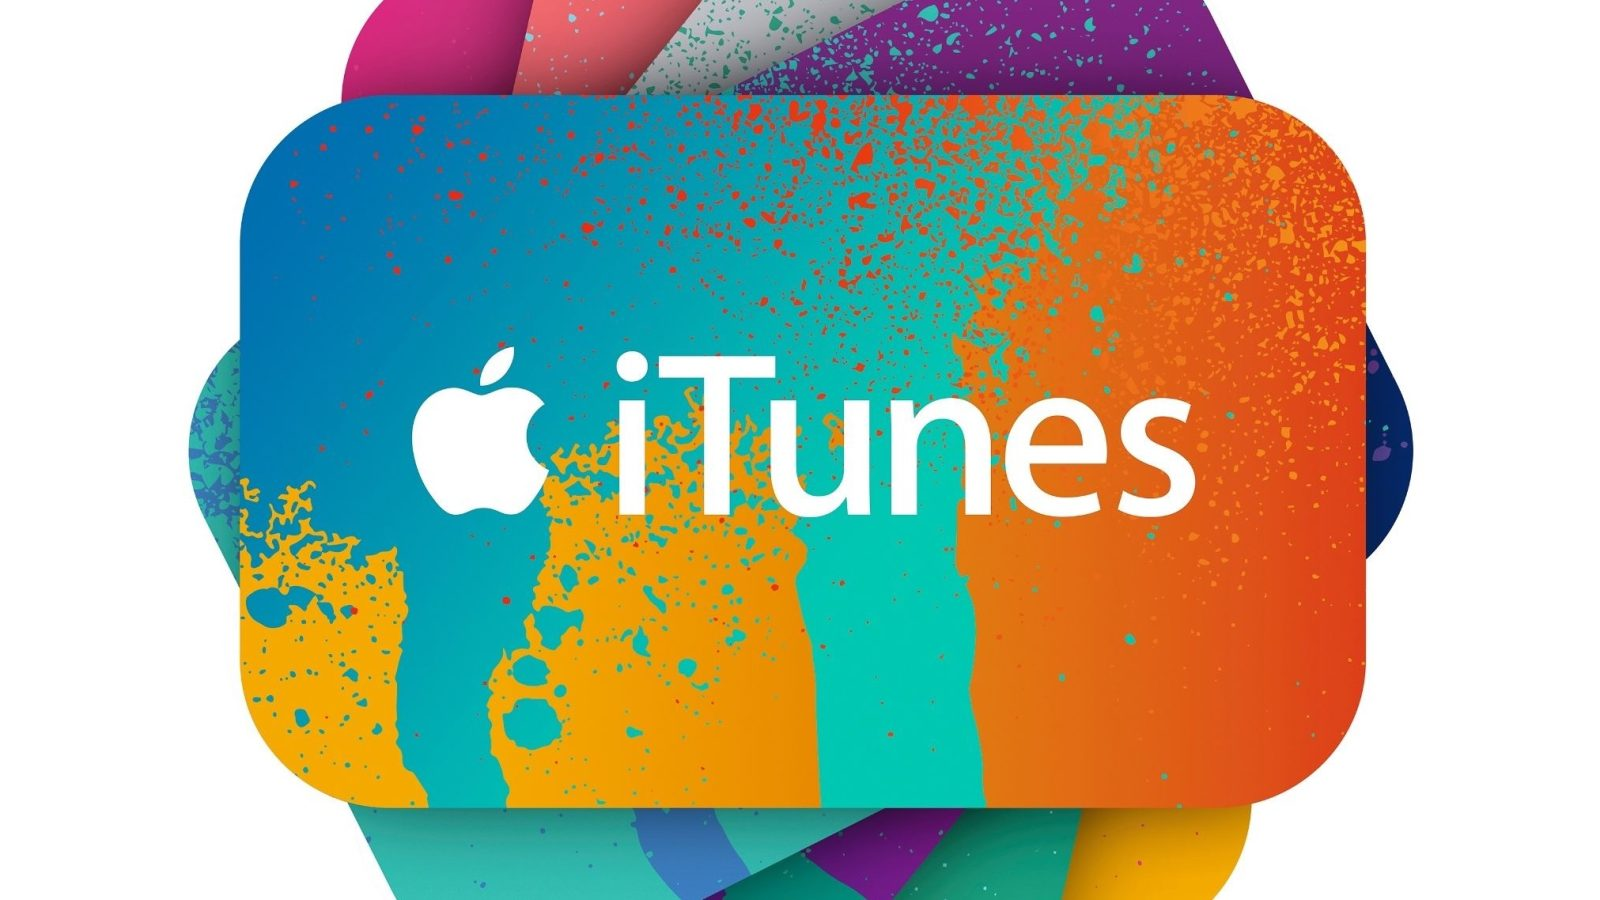 Take over 15% off iTunes gift cards with email delivery via Costco